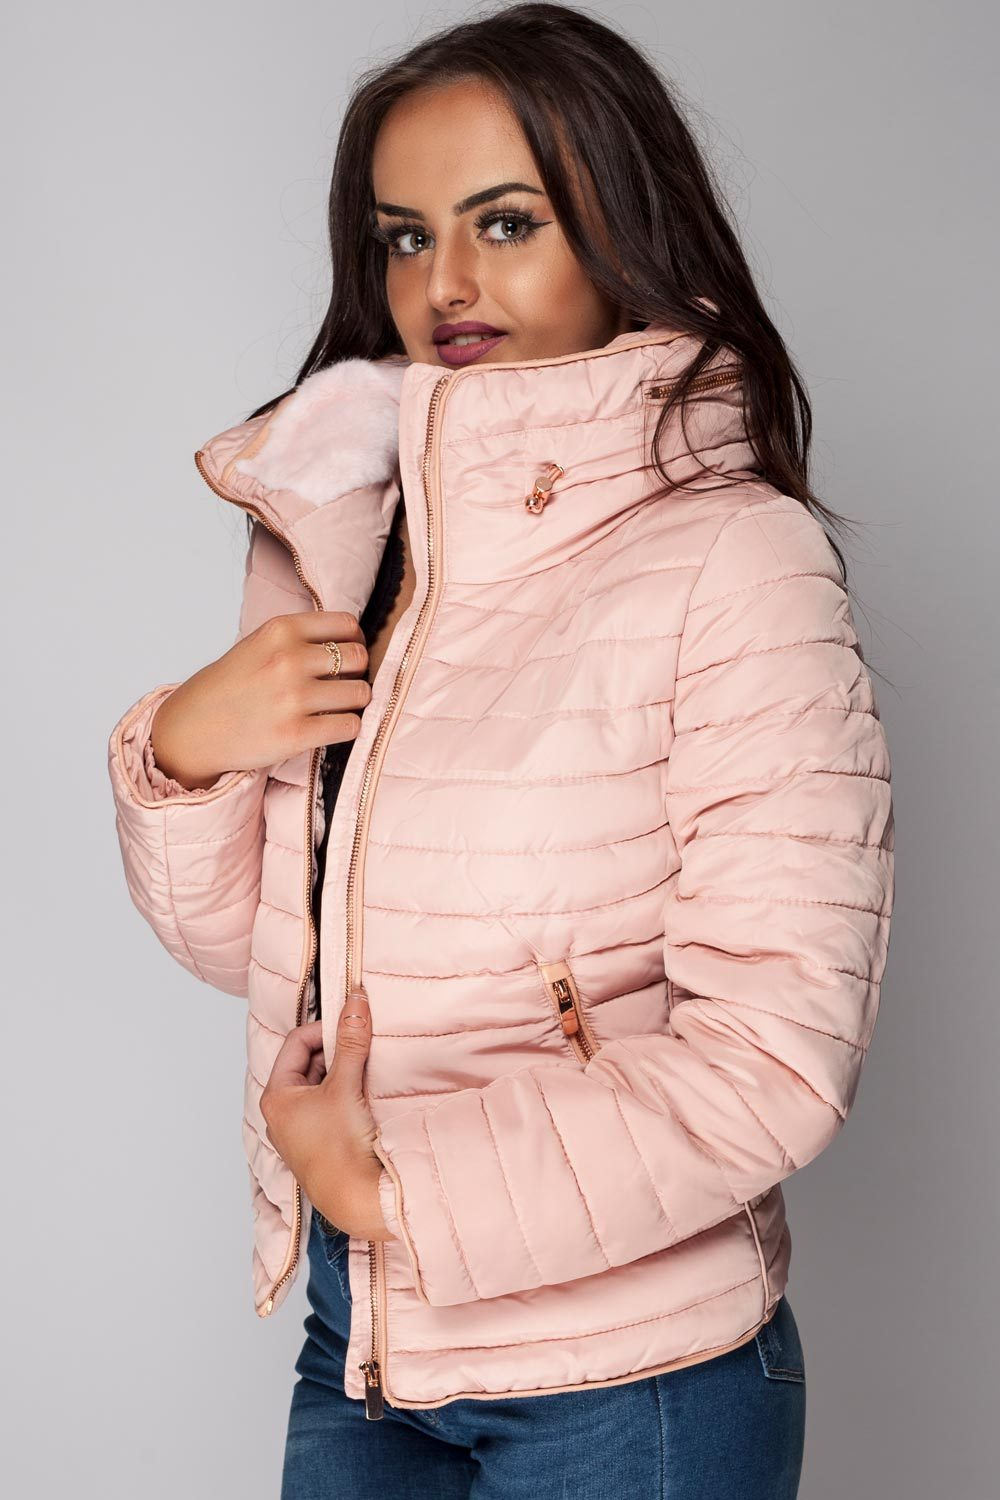 3cc423a8 Women,s Winter Coats Jackets Latest Styles AW 2018 – tagged